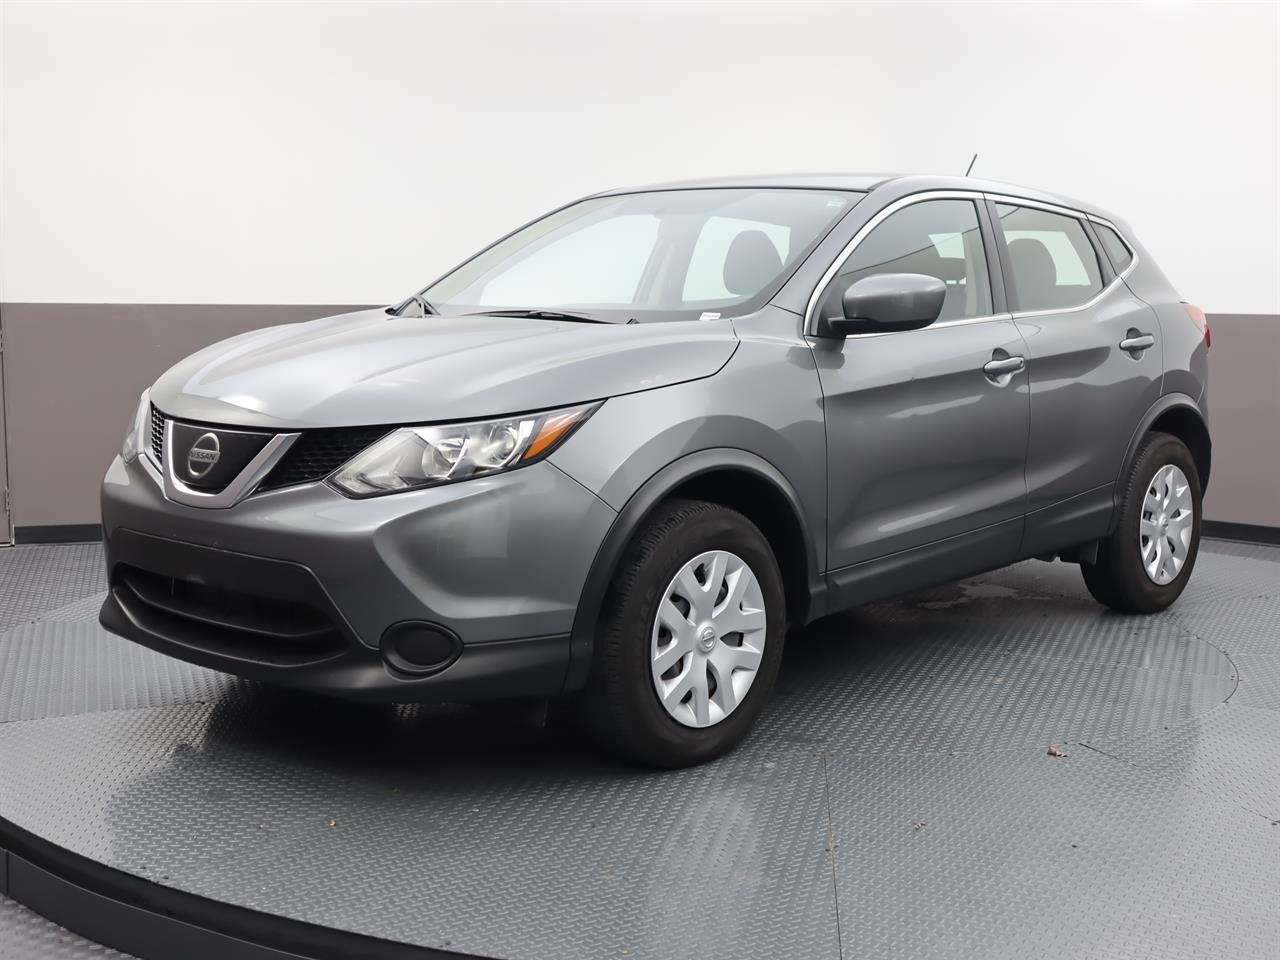 Used NISSAN ROGUE-SPORT 2019 MARGATE S